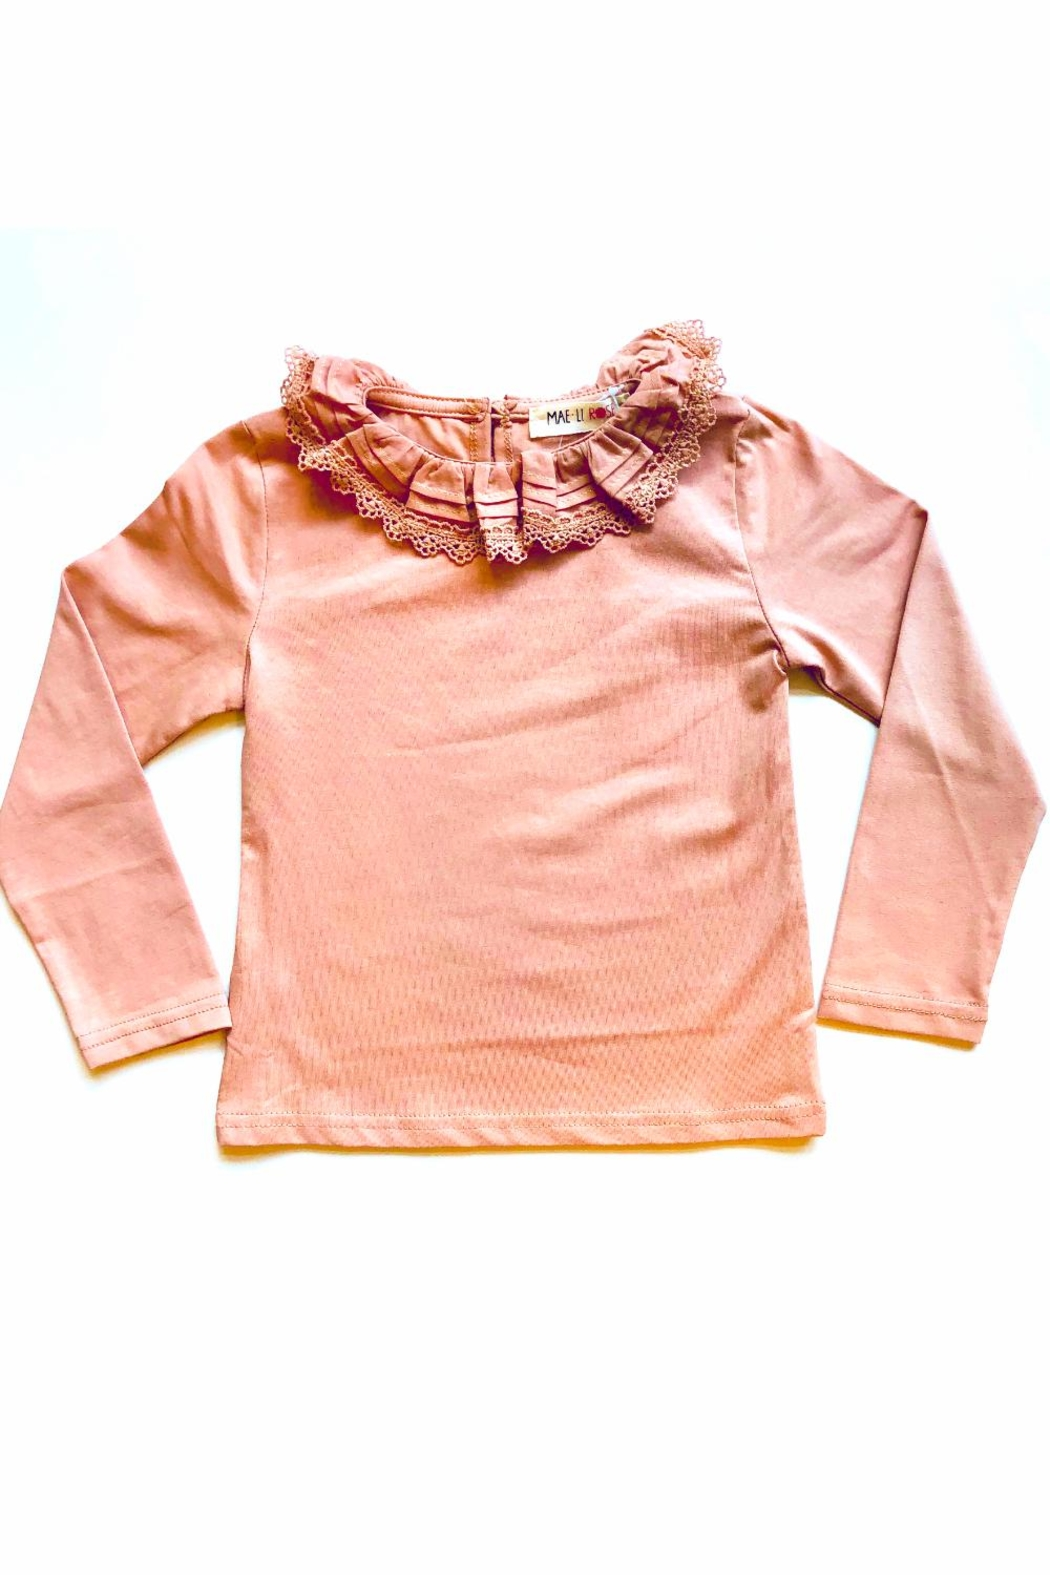 Maeli Rose Ruffle Collar Top - Main Image